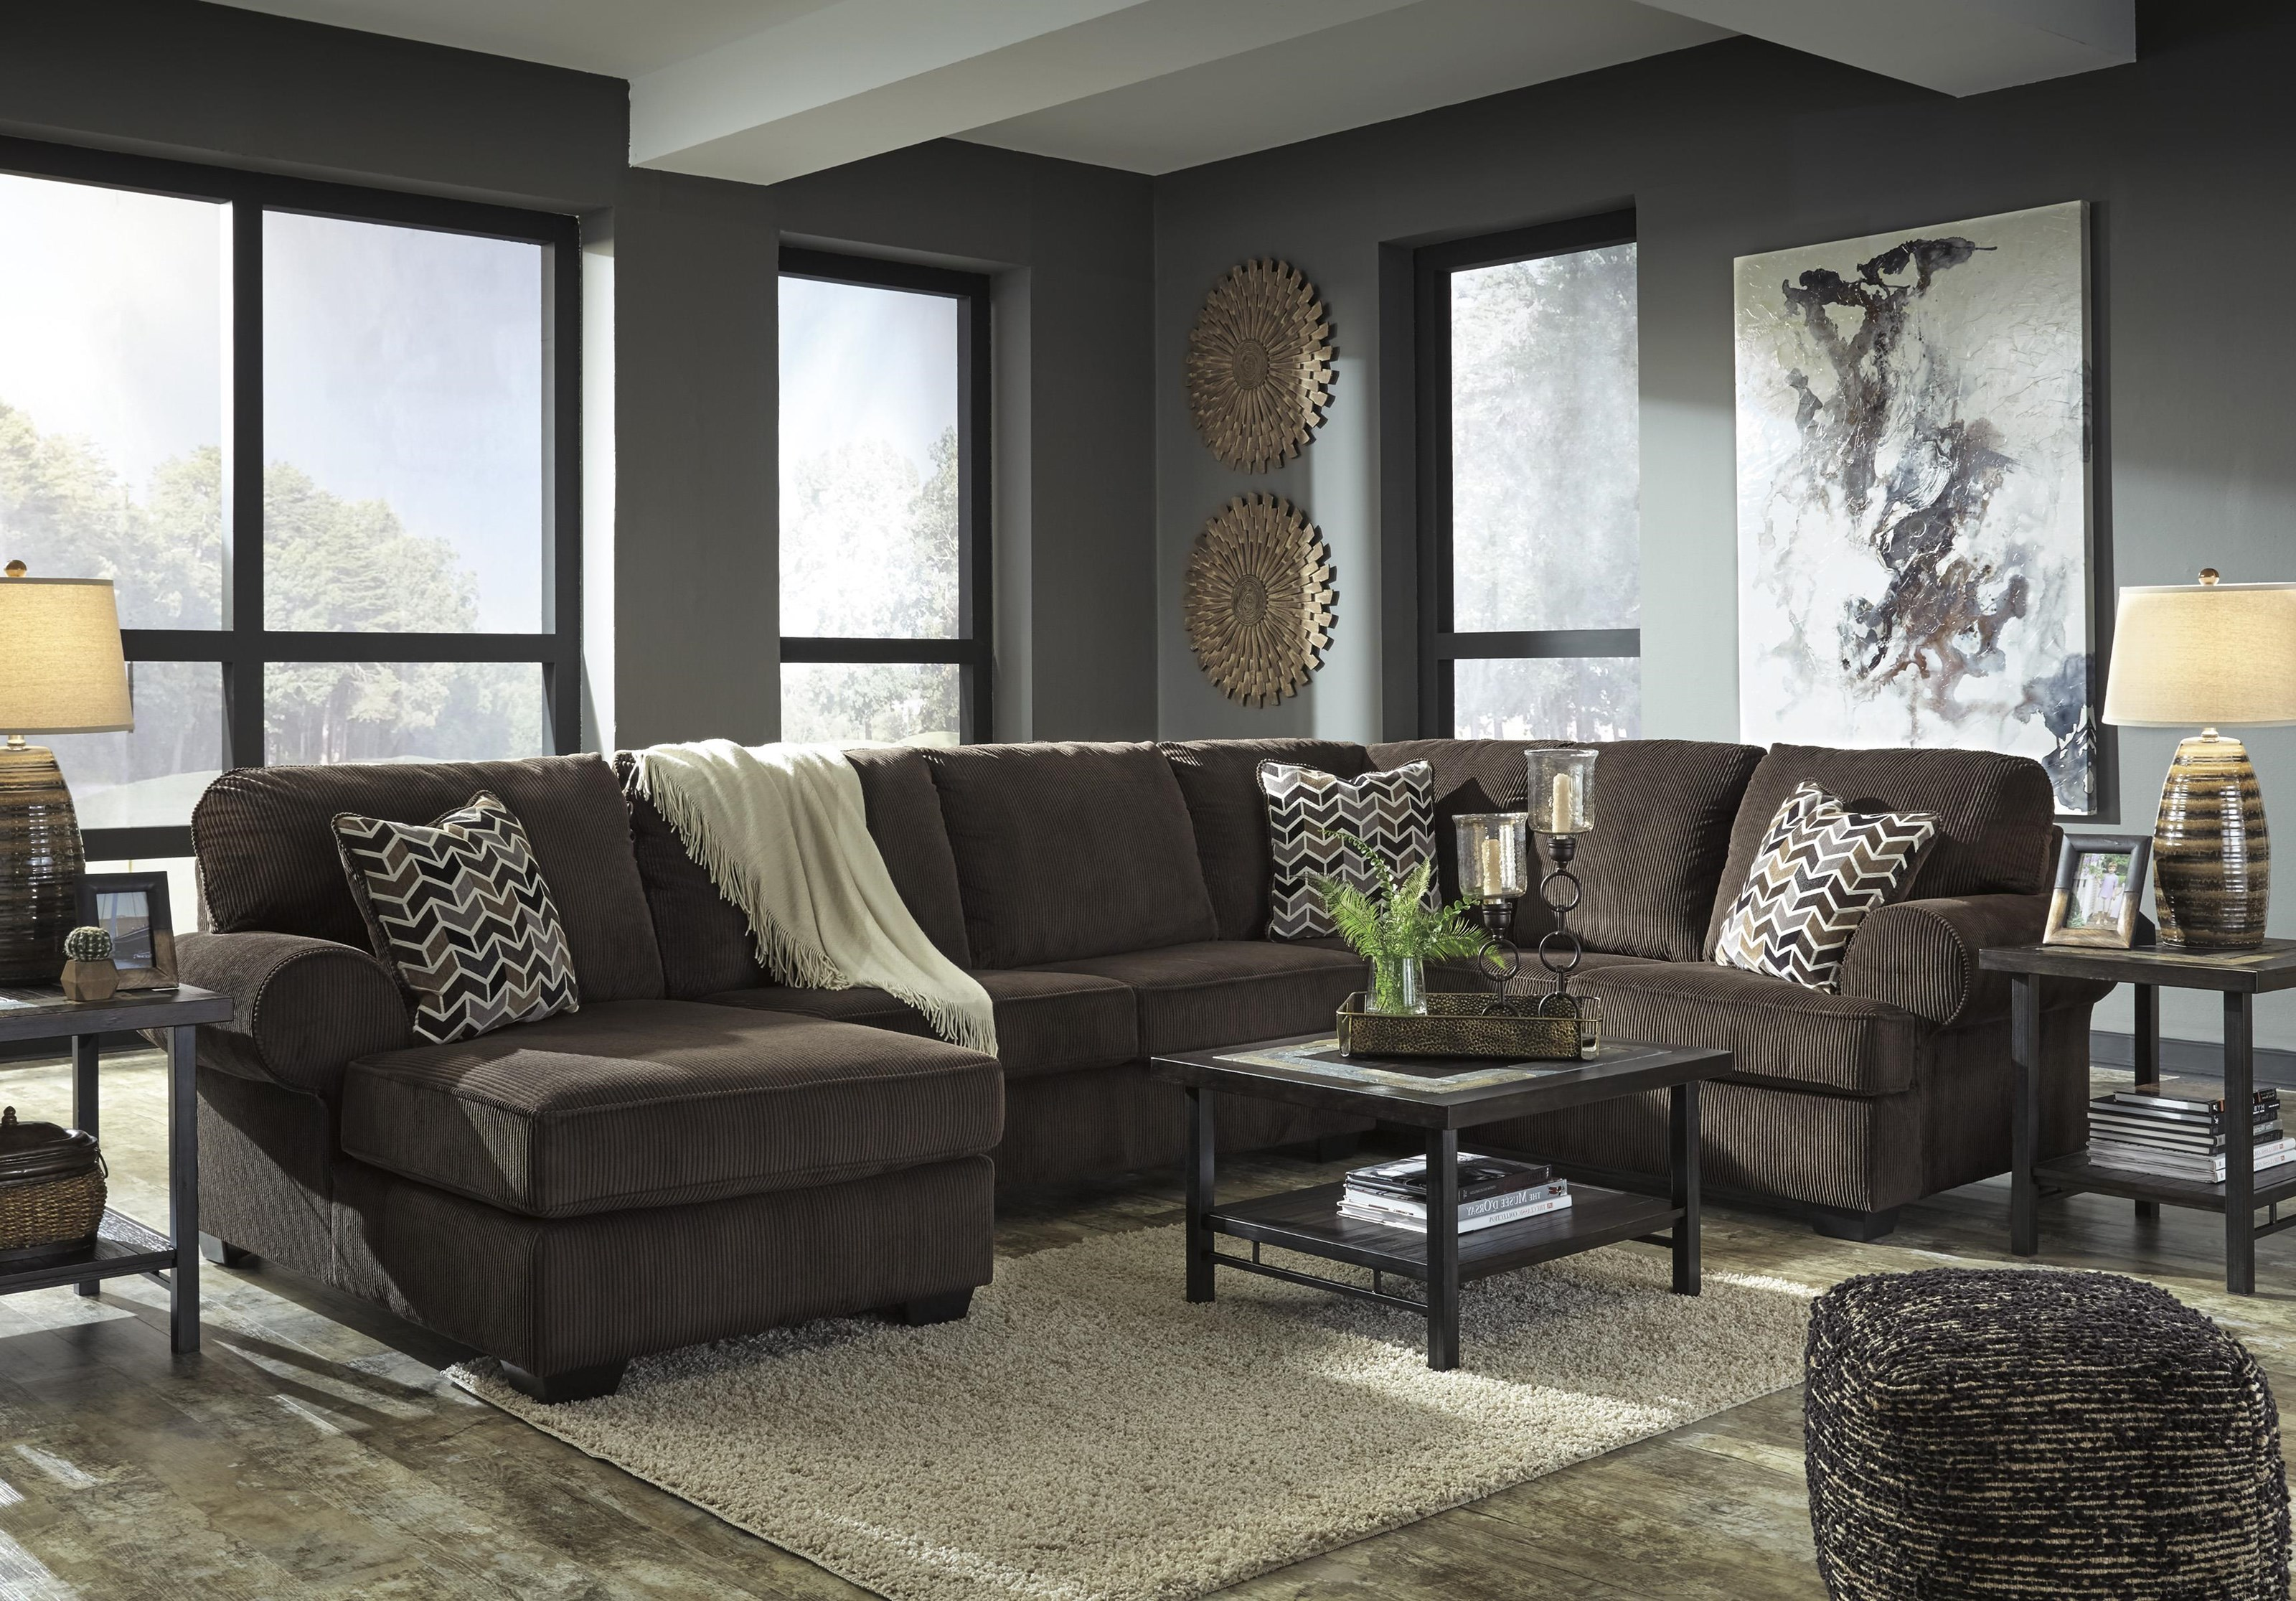 Jinllingsly 3 Piece Stationary Sectional by Signature Design by Ashley at Westrich Furniture & Appliances